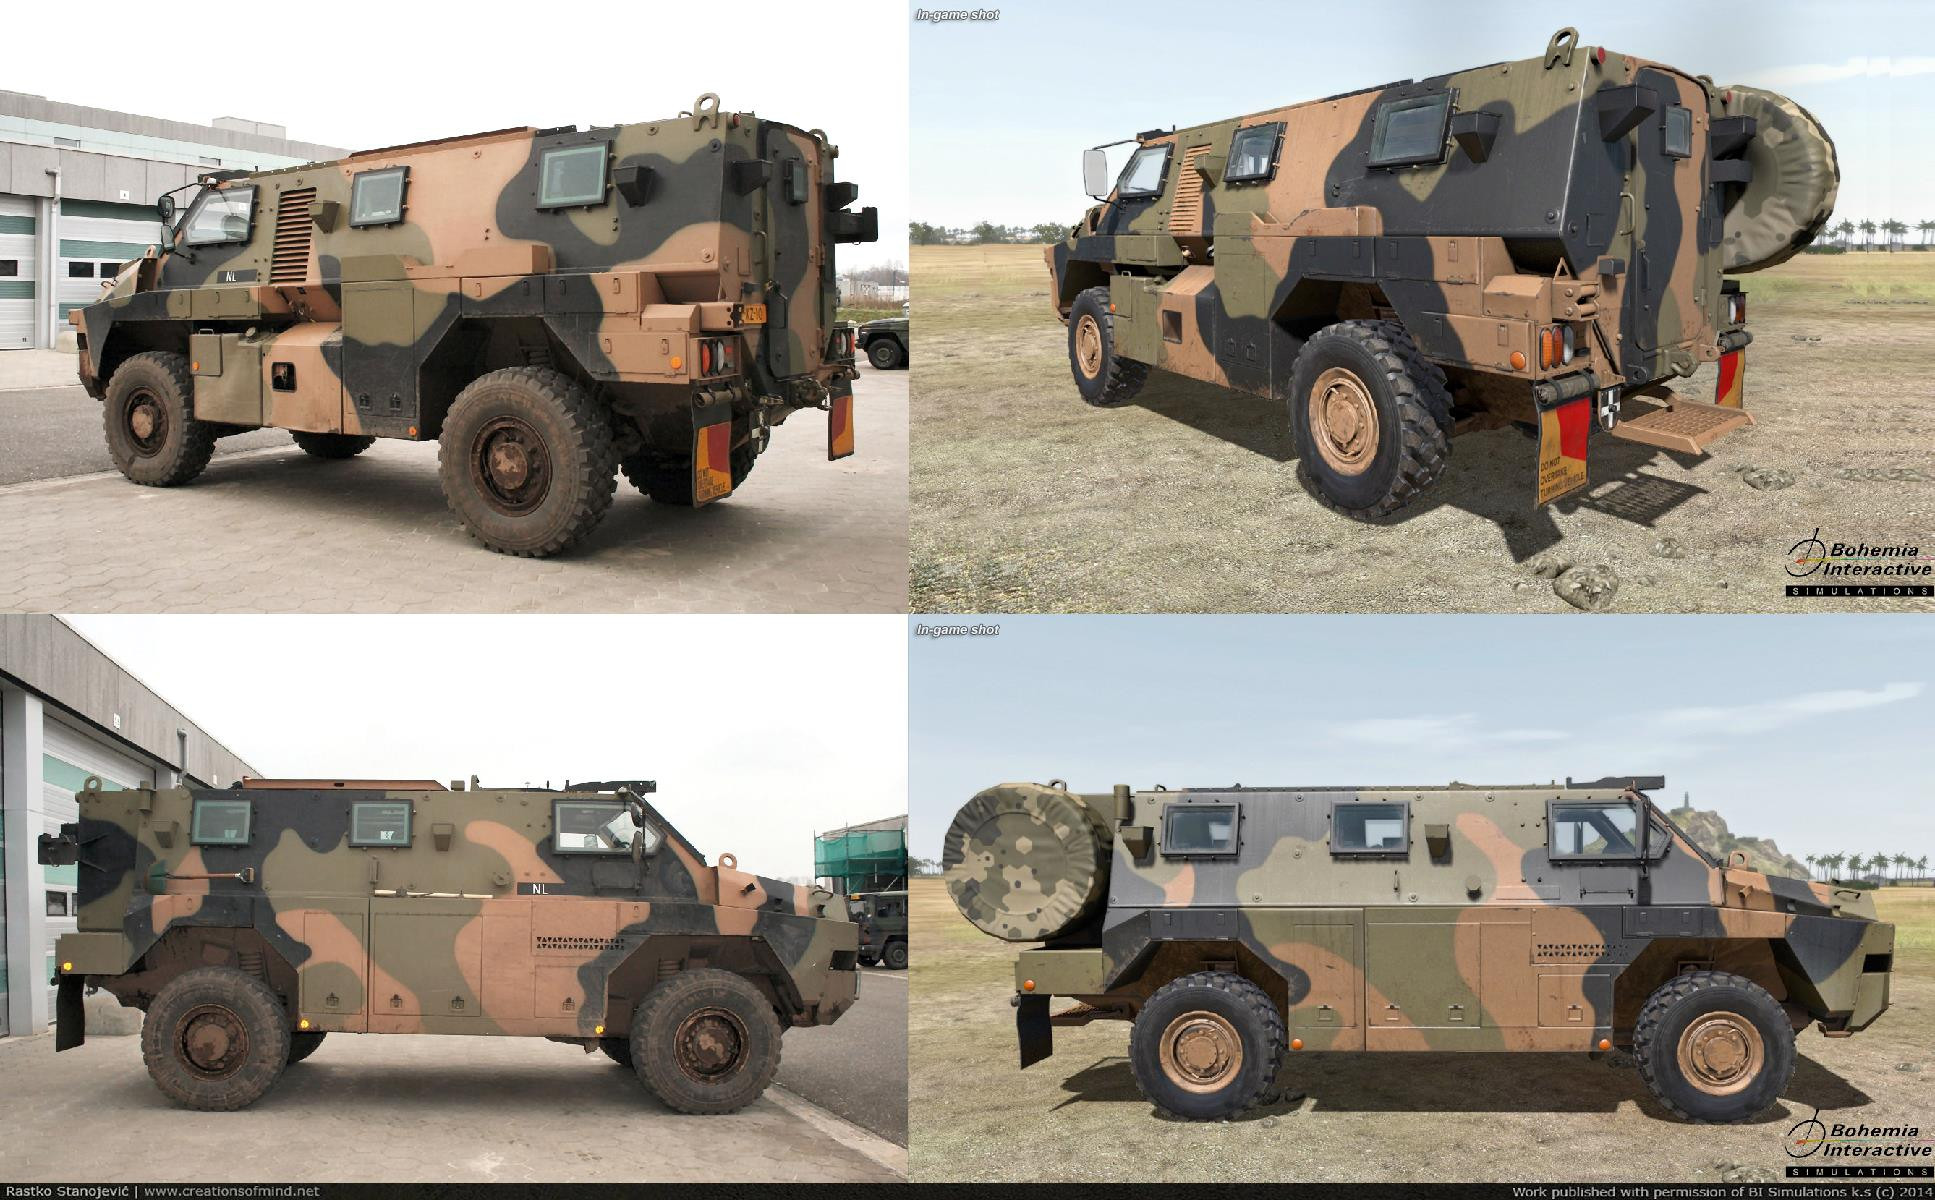 Bushmaster real life reference (left) vs game model (right) - 2014